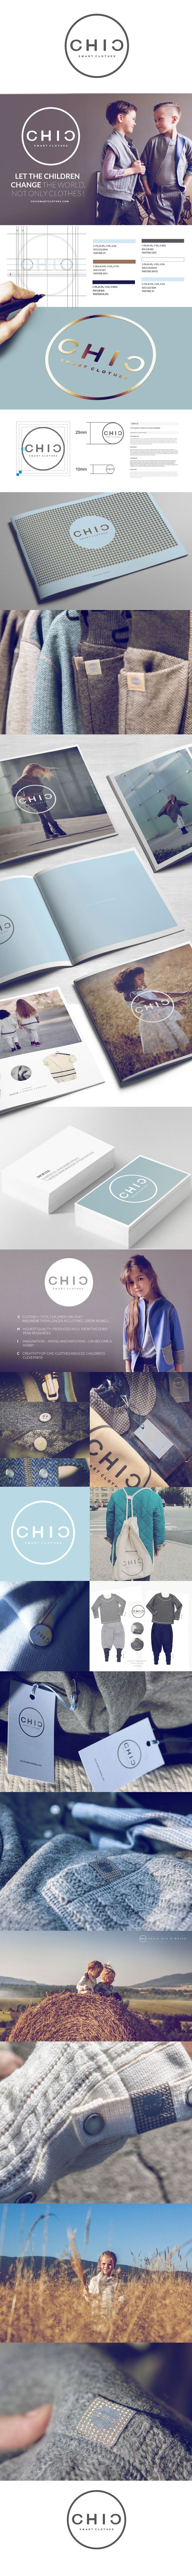 CHIC - smart clothes ID on Behance                                                                                                                                                                                 More